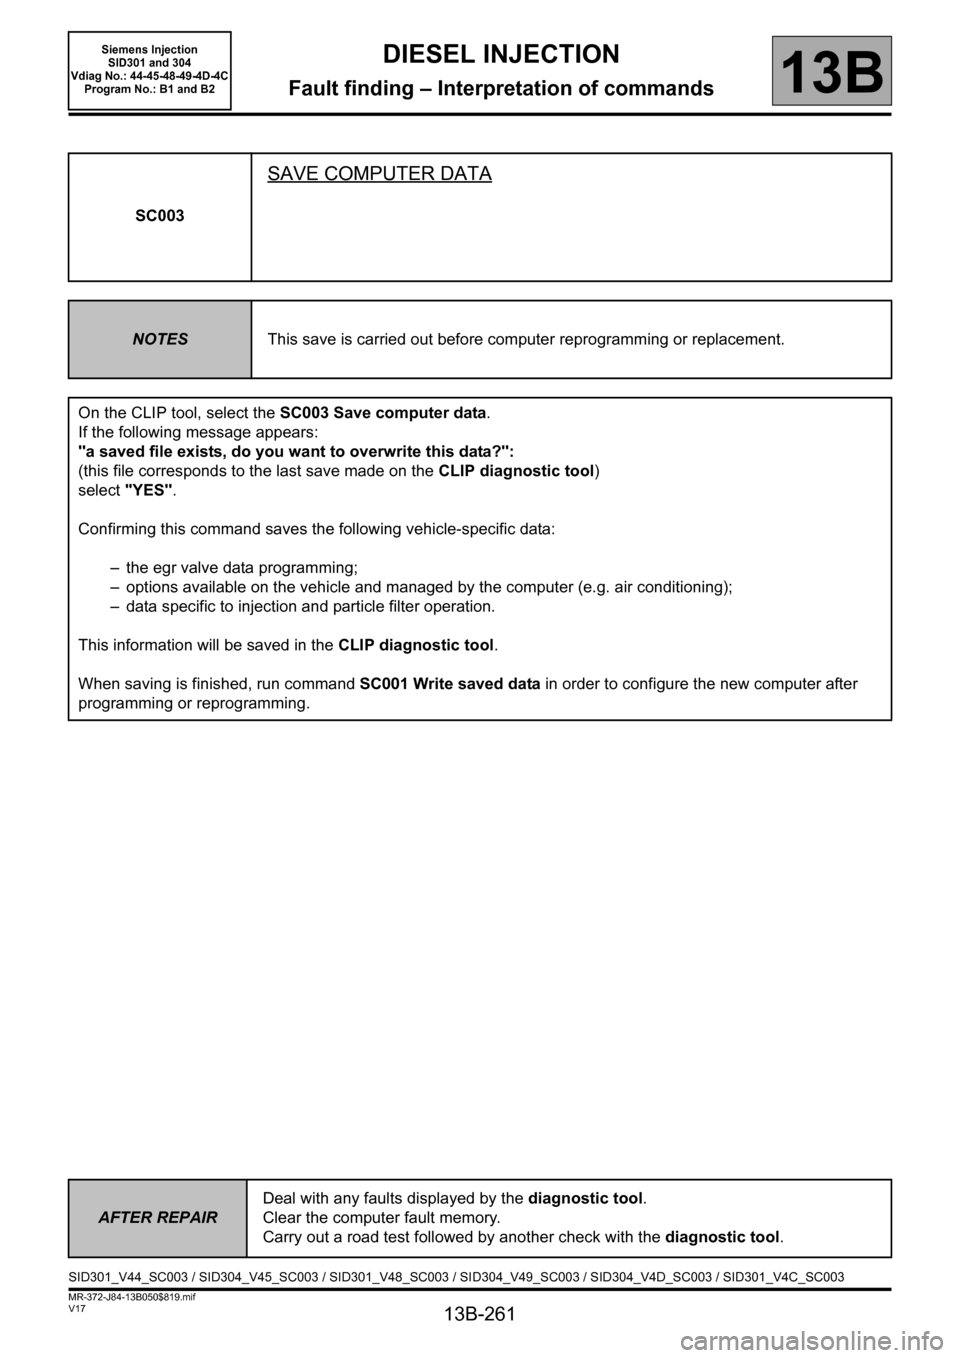 RENAULT SCENIC 2011 J95 / 3.G Engine And Peripherals Siemens Injection Workshop Manual, Page 261